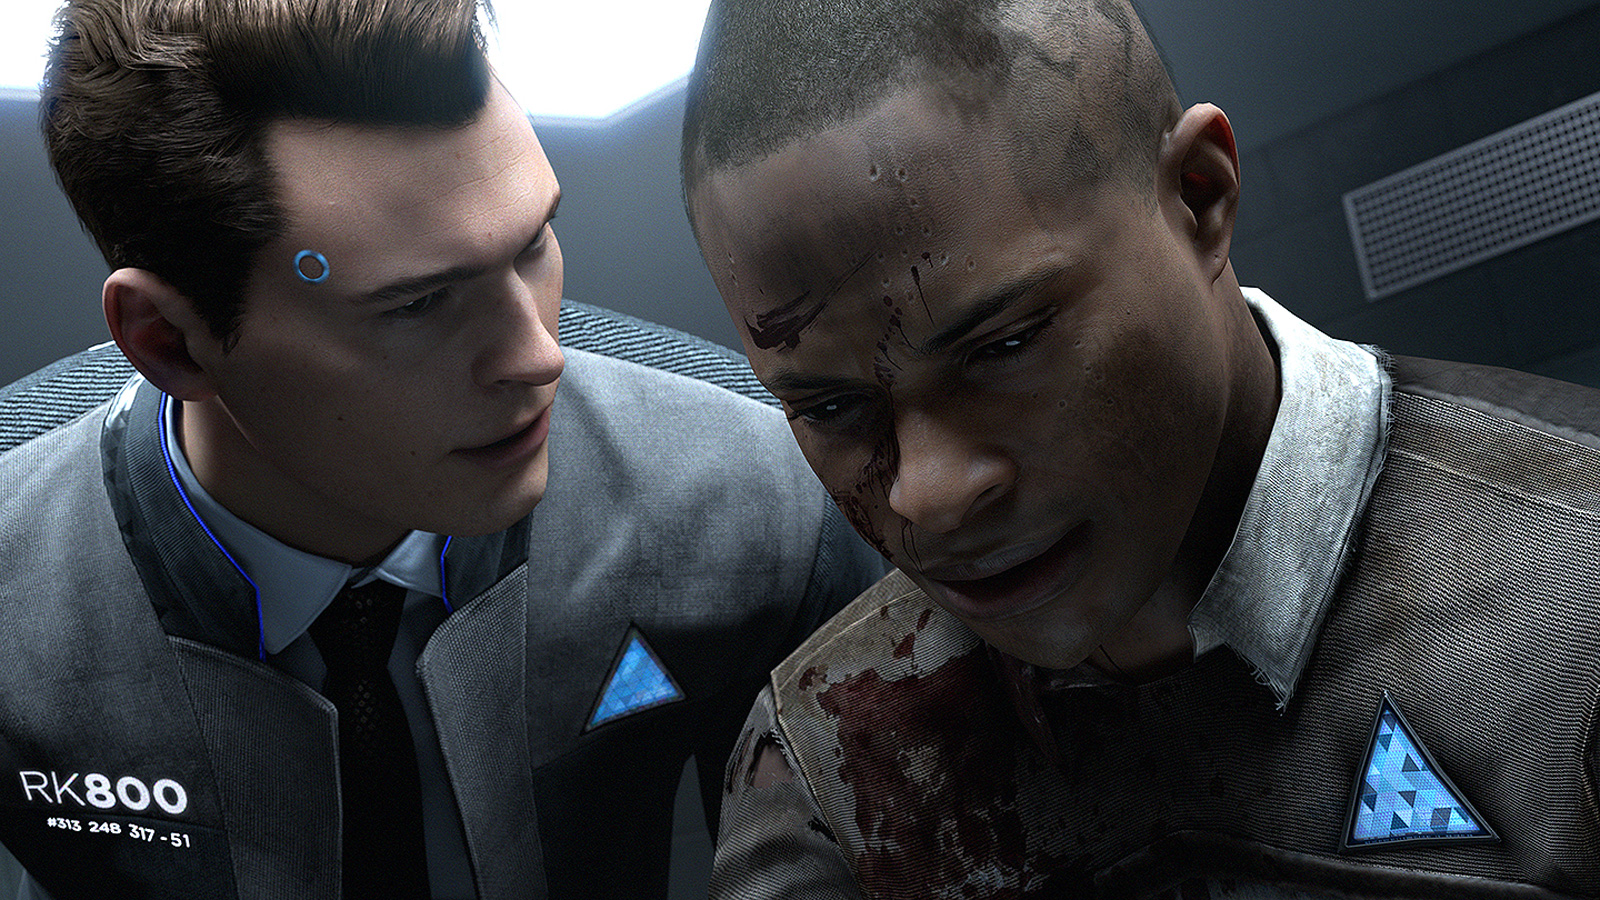 Quantic Dream S Twitch Add On Puts Detroit Gameplay In Viewers Hands Engadget